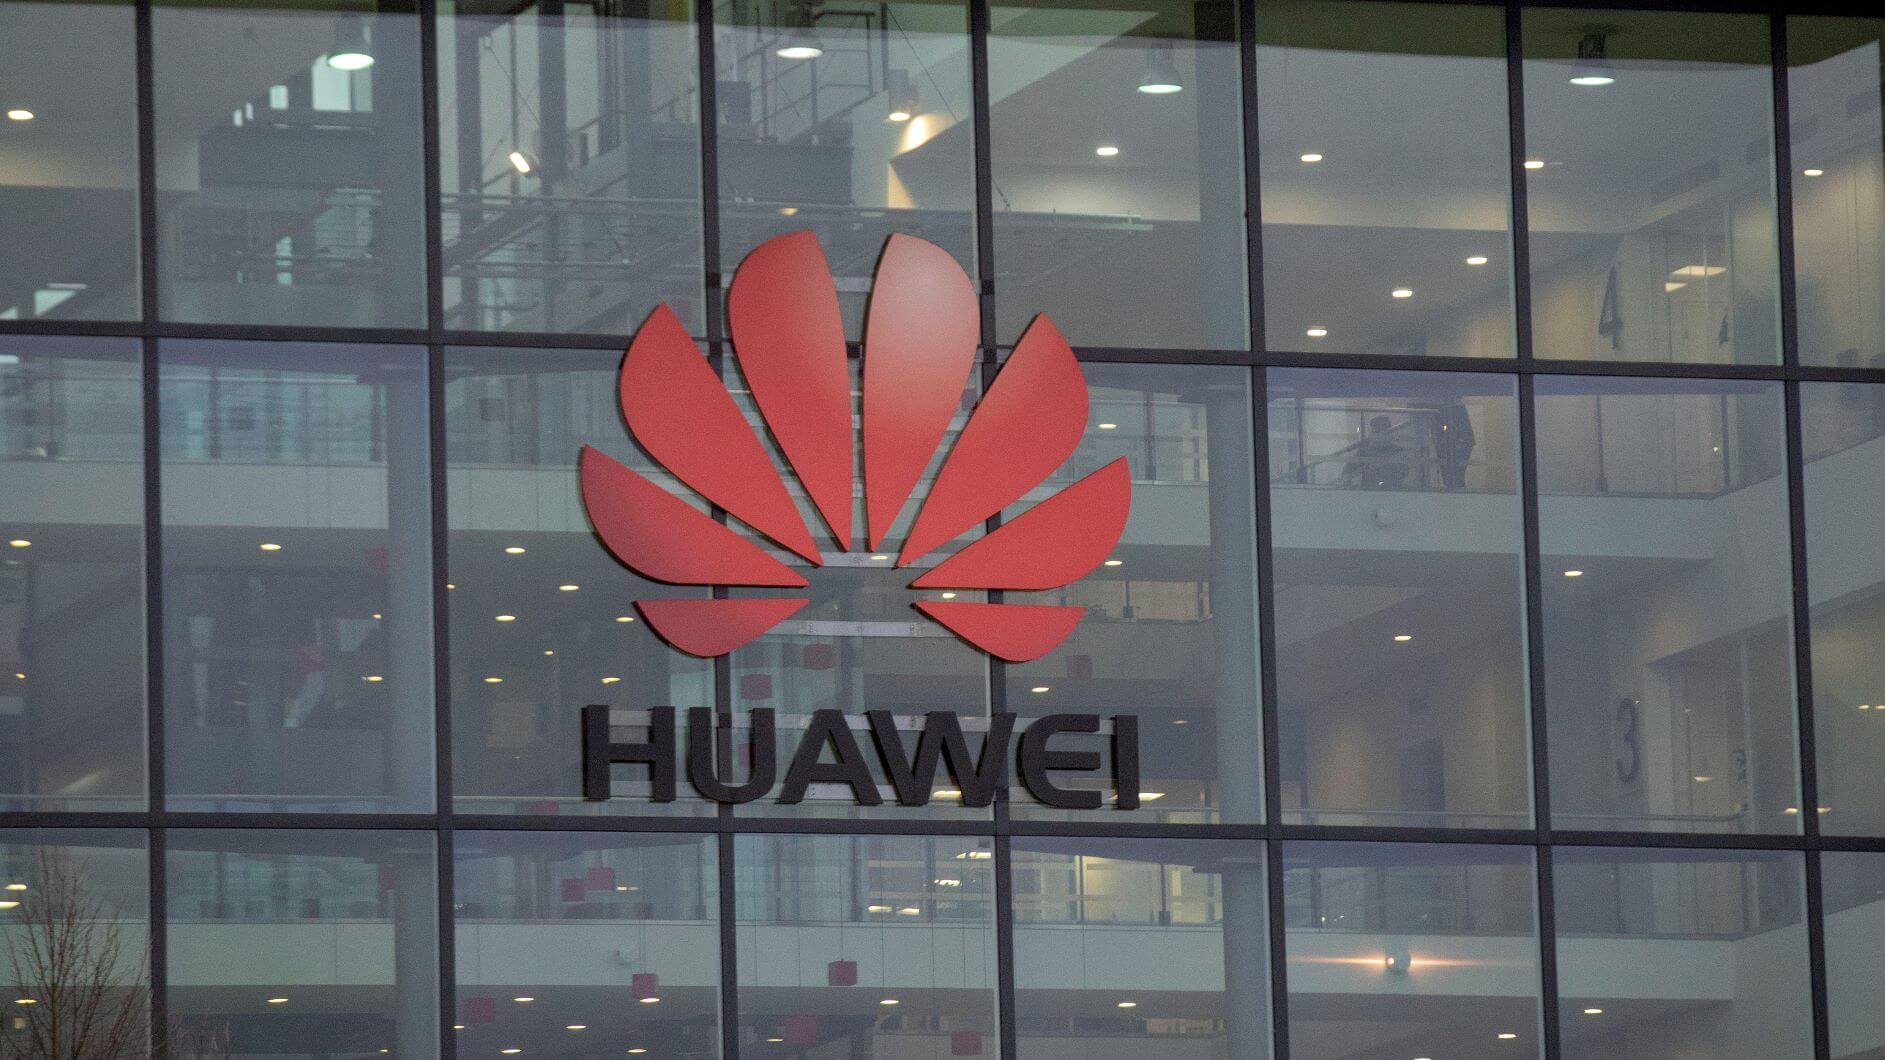 Five Eyes Intelligence Experts Meet Amid Huawei 5G Controversy